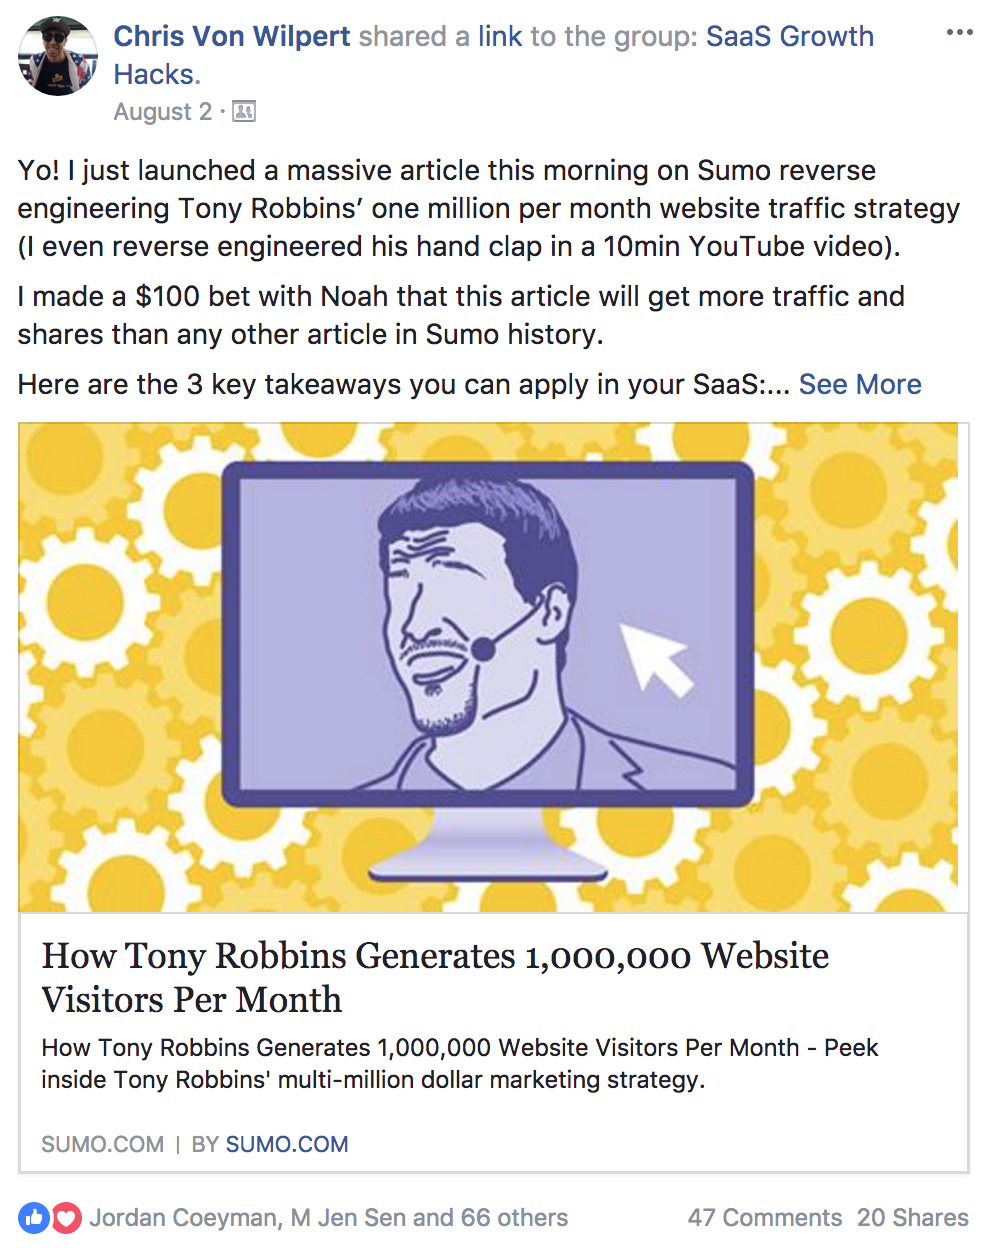 Screenshot showing a content promotion post on Facebook by Sumo